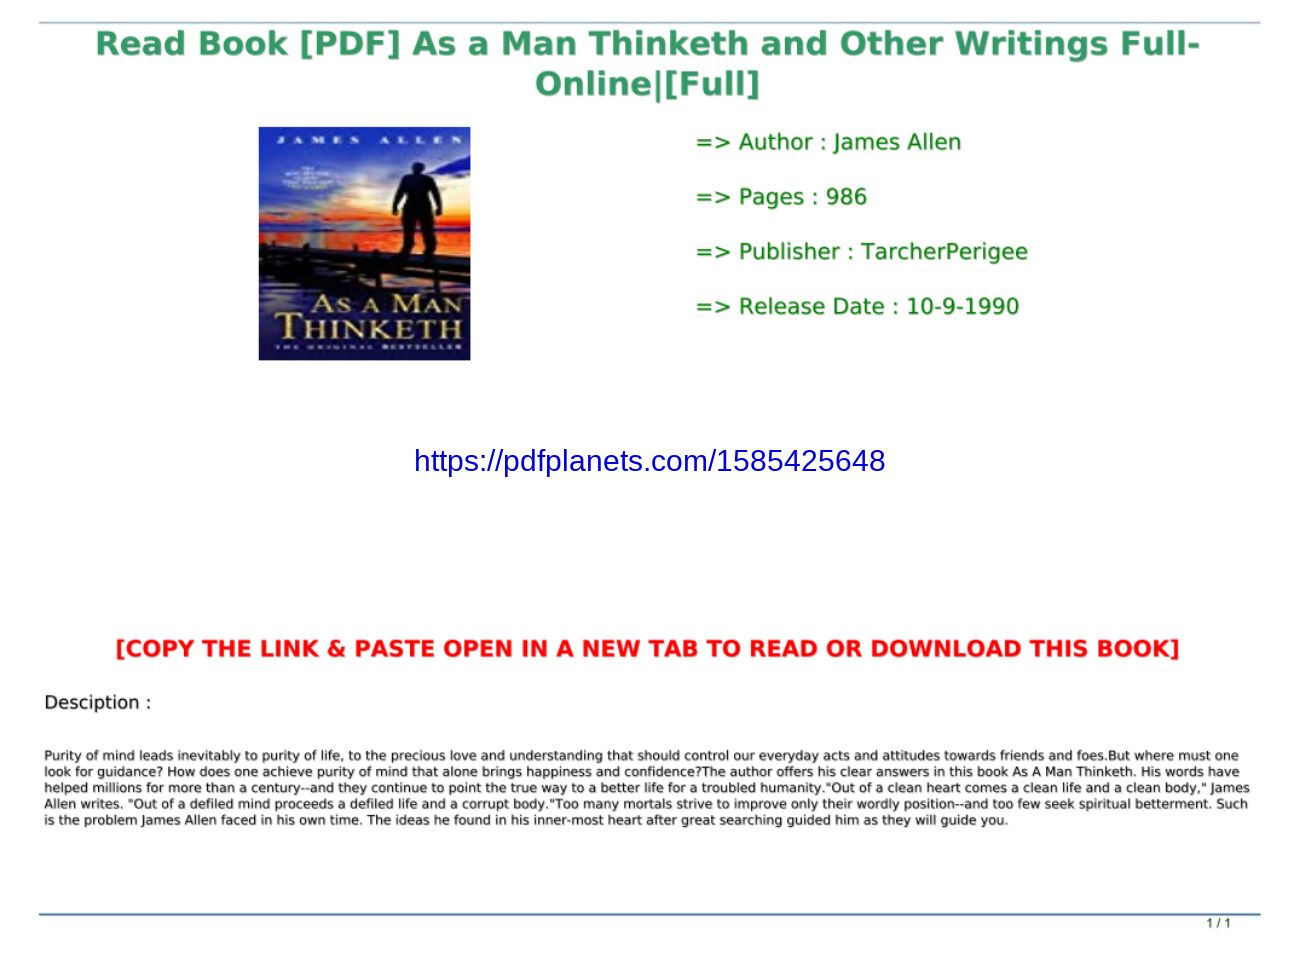 As A Man Thinketh Pdf Online